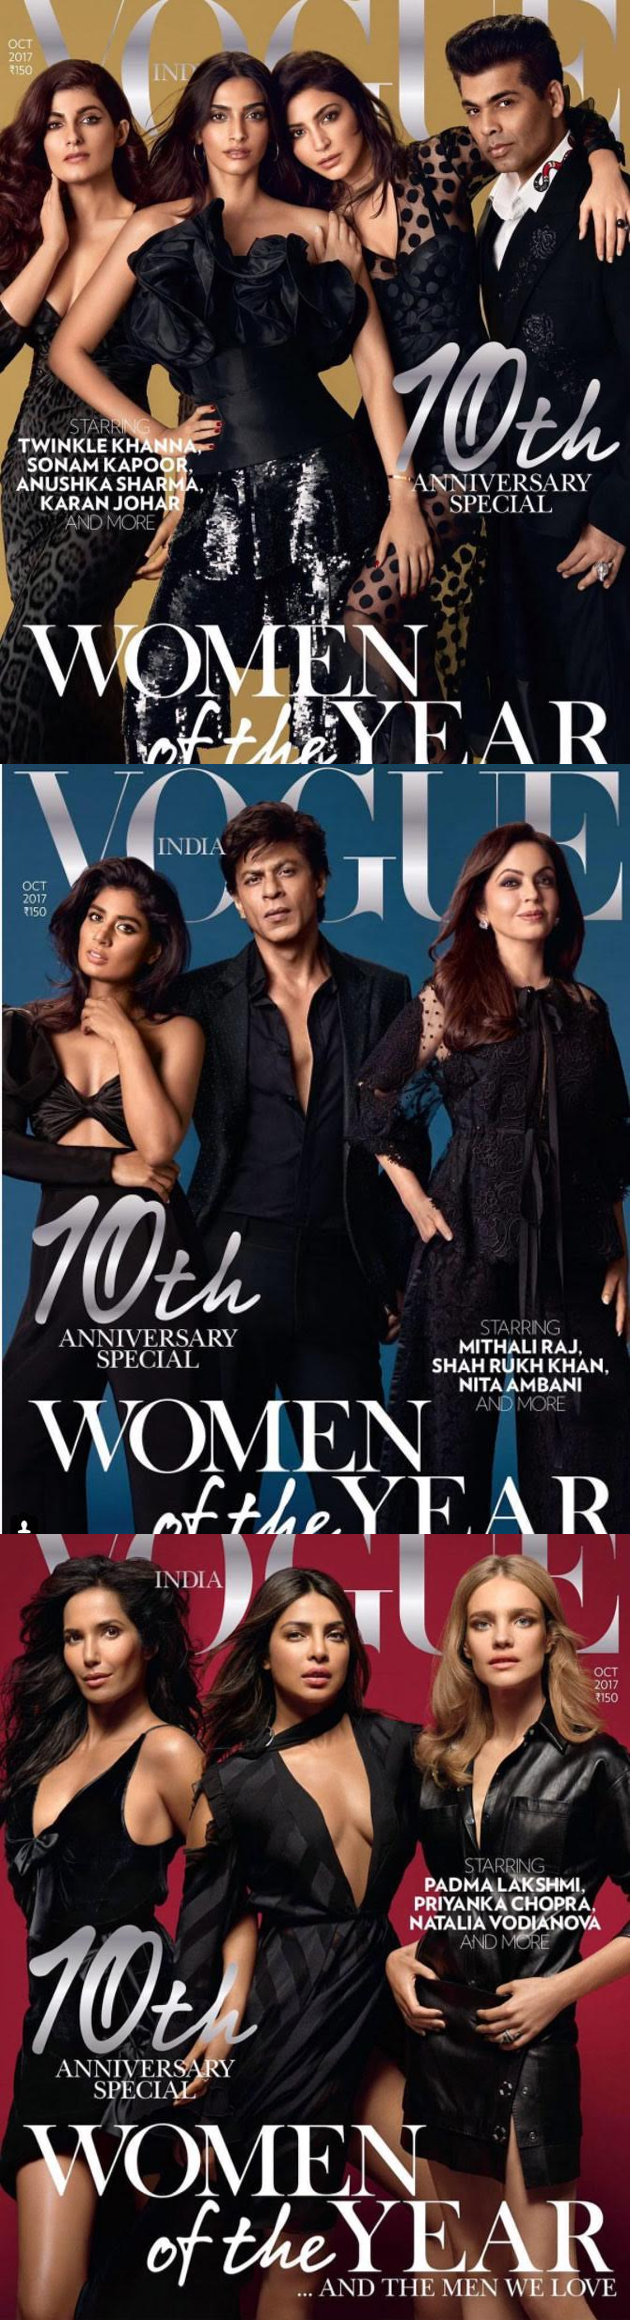 Vogue India unveiled exclusive Women of the Year cover pages